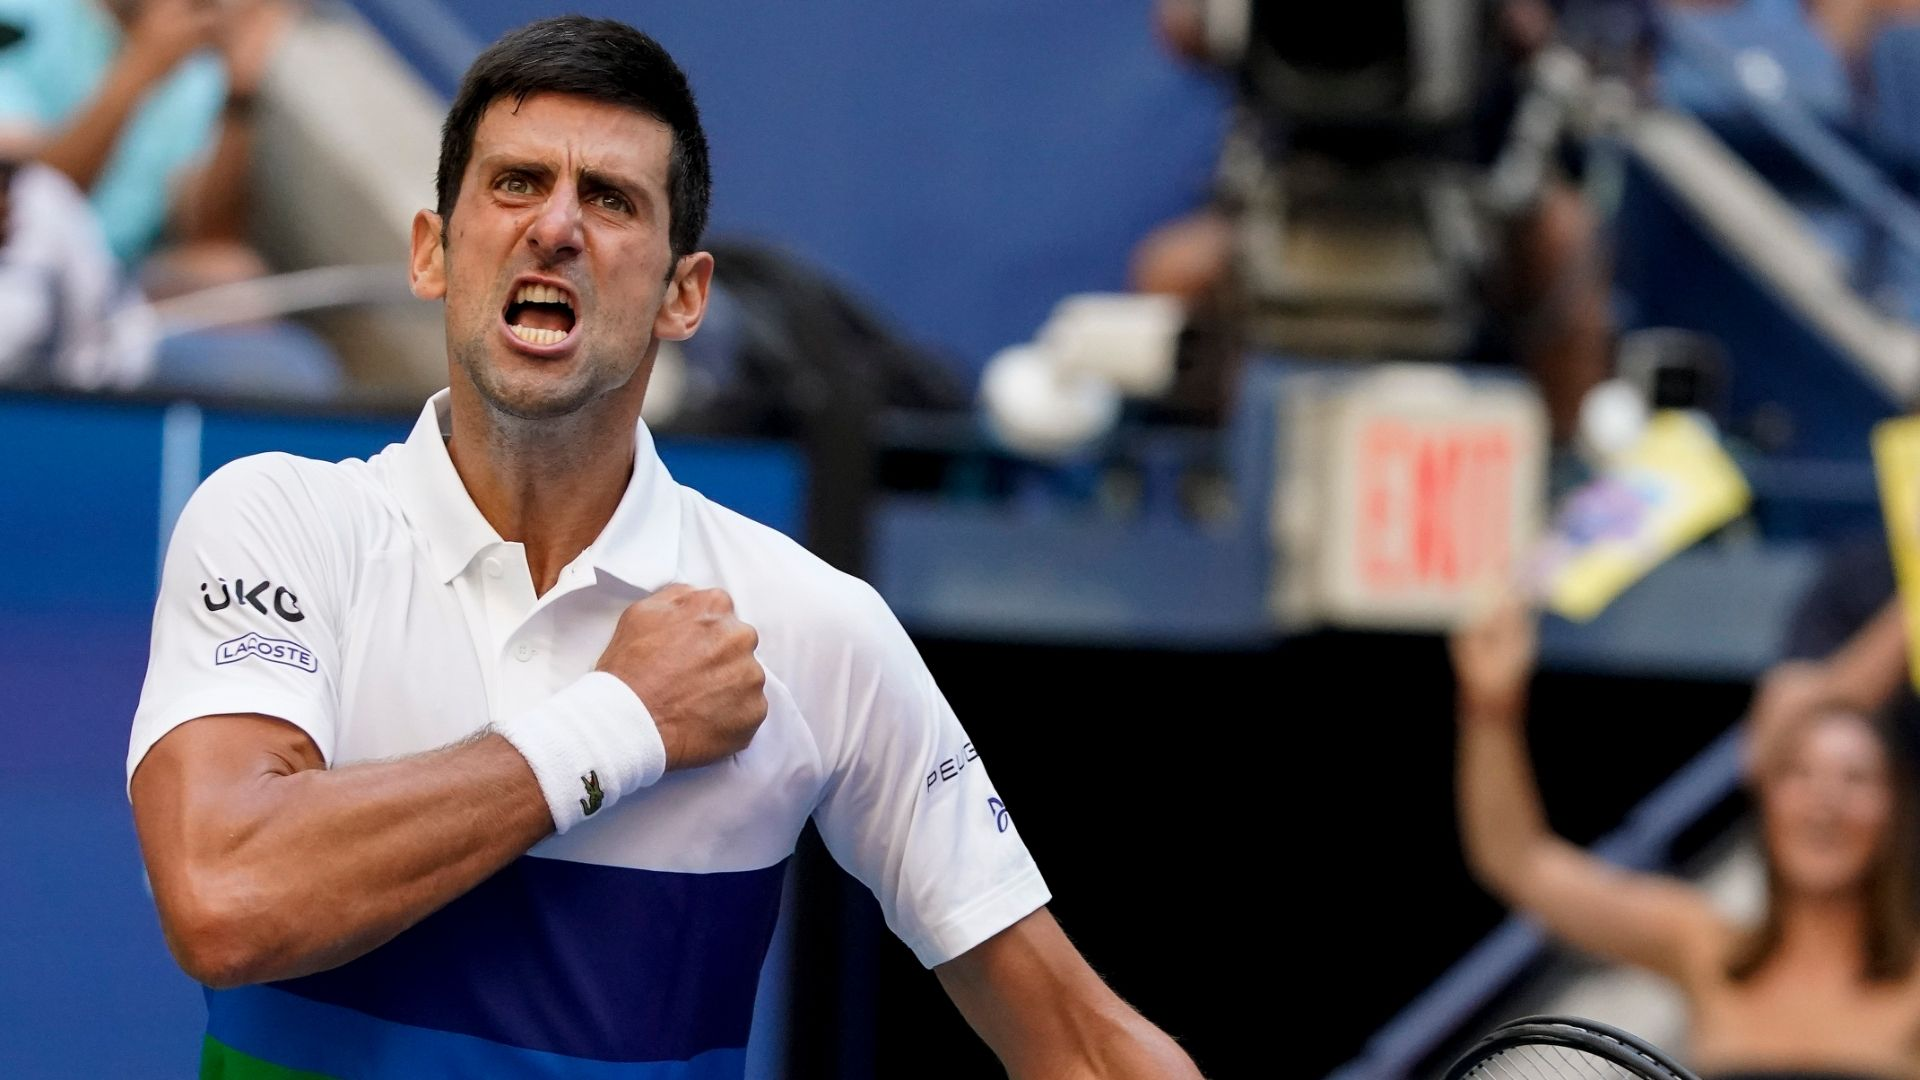 Novak Djokovic lets emotions show, 'gets groove back' in third round victory at US Open